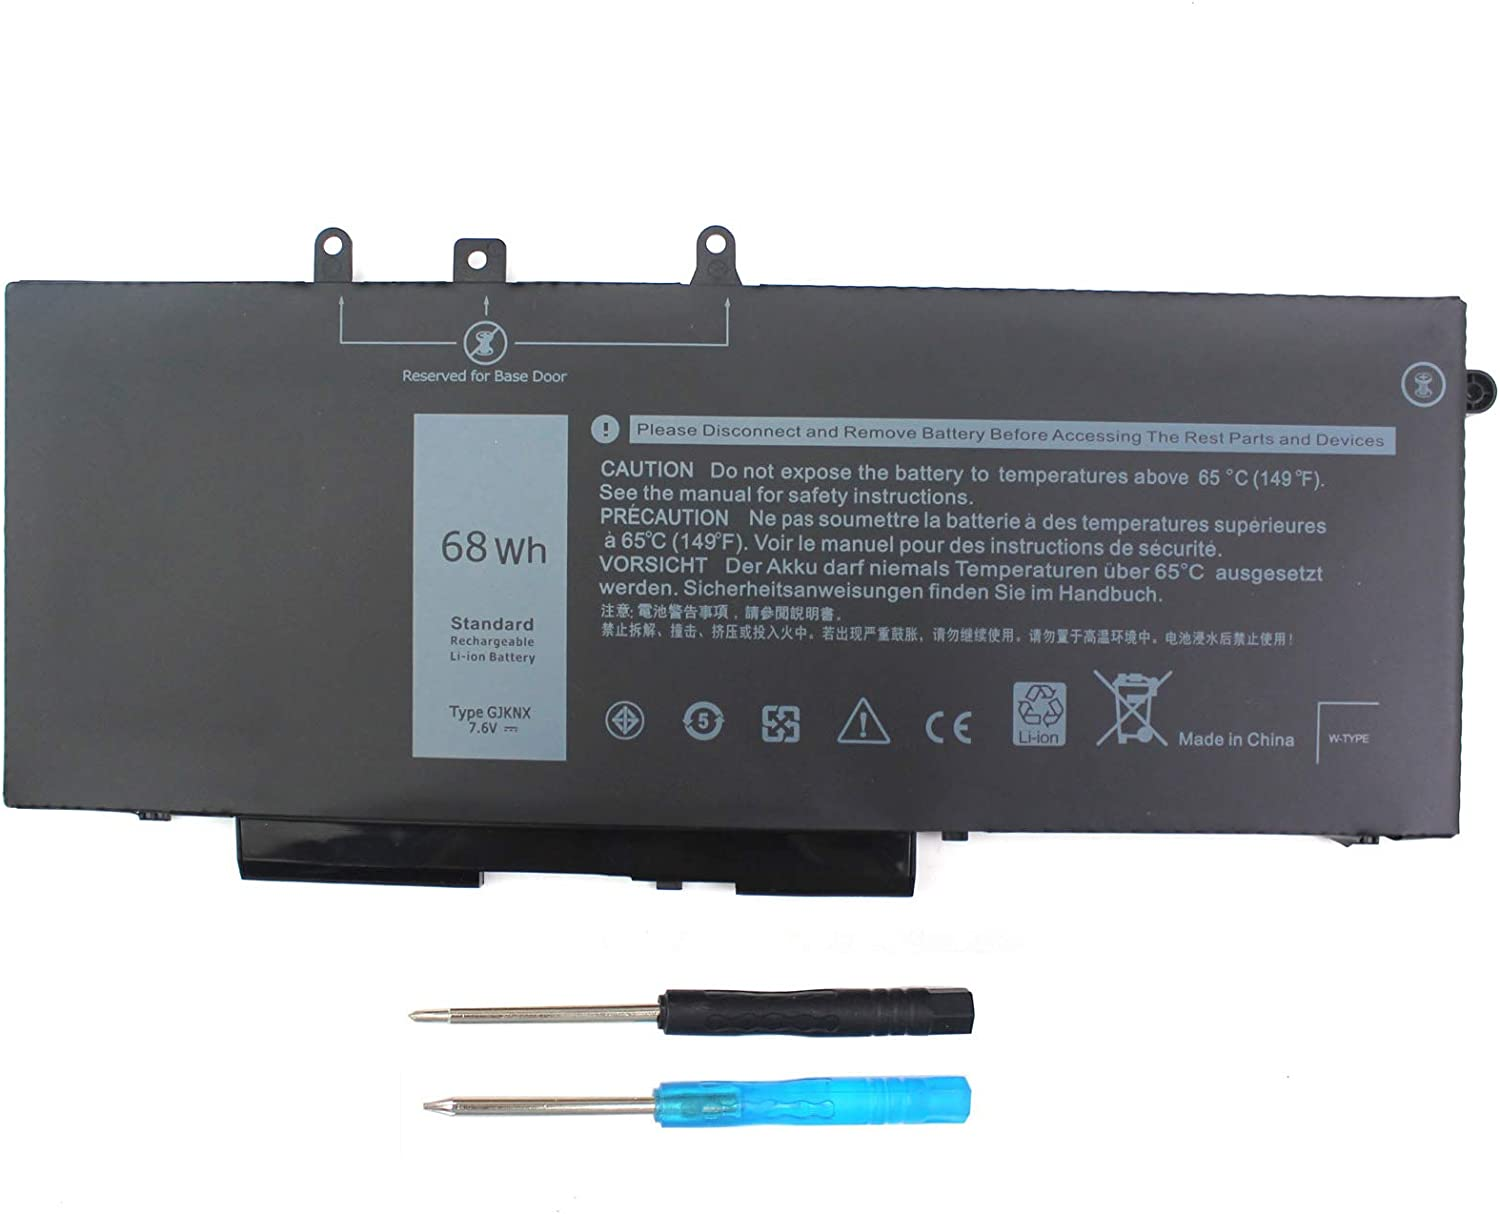 Angwel GJKNX Laptop Battery Compatible with Dell Latitude 5480 5580 5280 5490 5491 5580 5590 5591 E5480 E5580 E5590 E5490 Precision 15 3520 3530 M3520 GD1JP 0GD1JP DY9NT 0DY9NT[7.6V 68Wh]